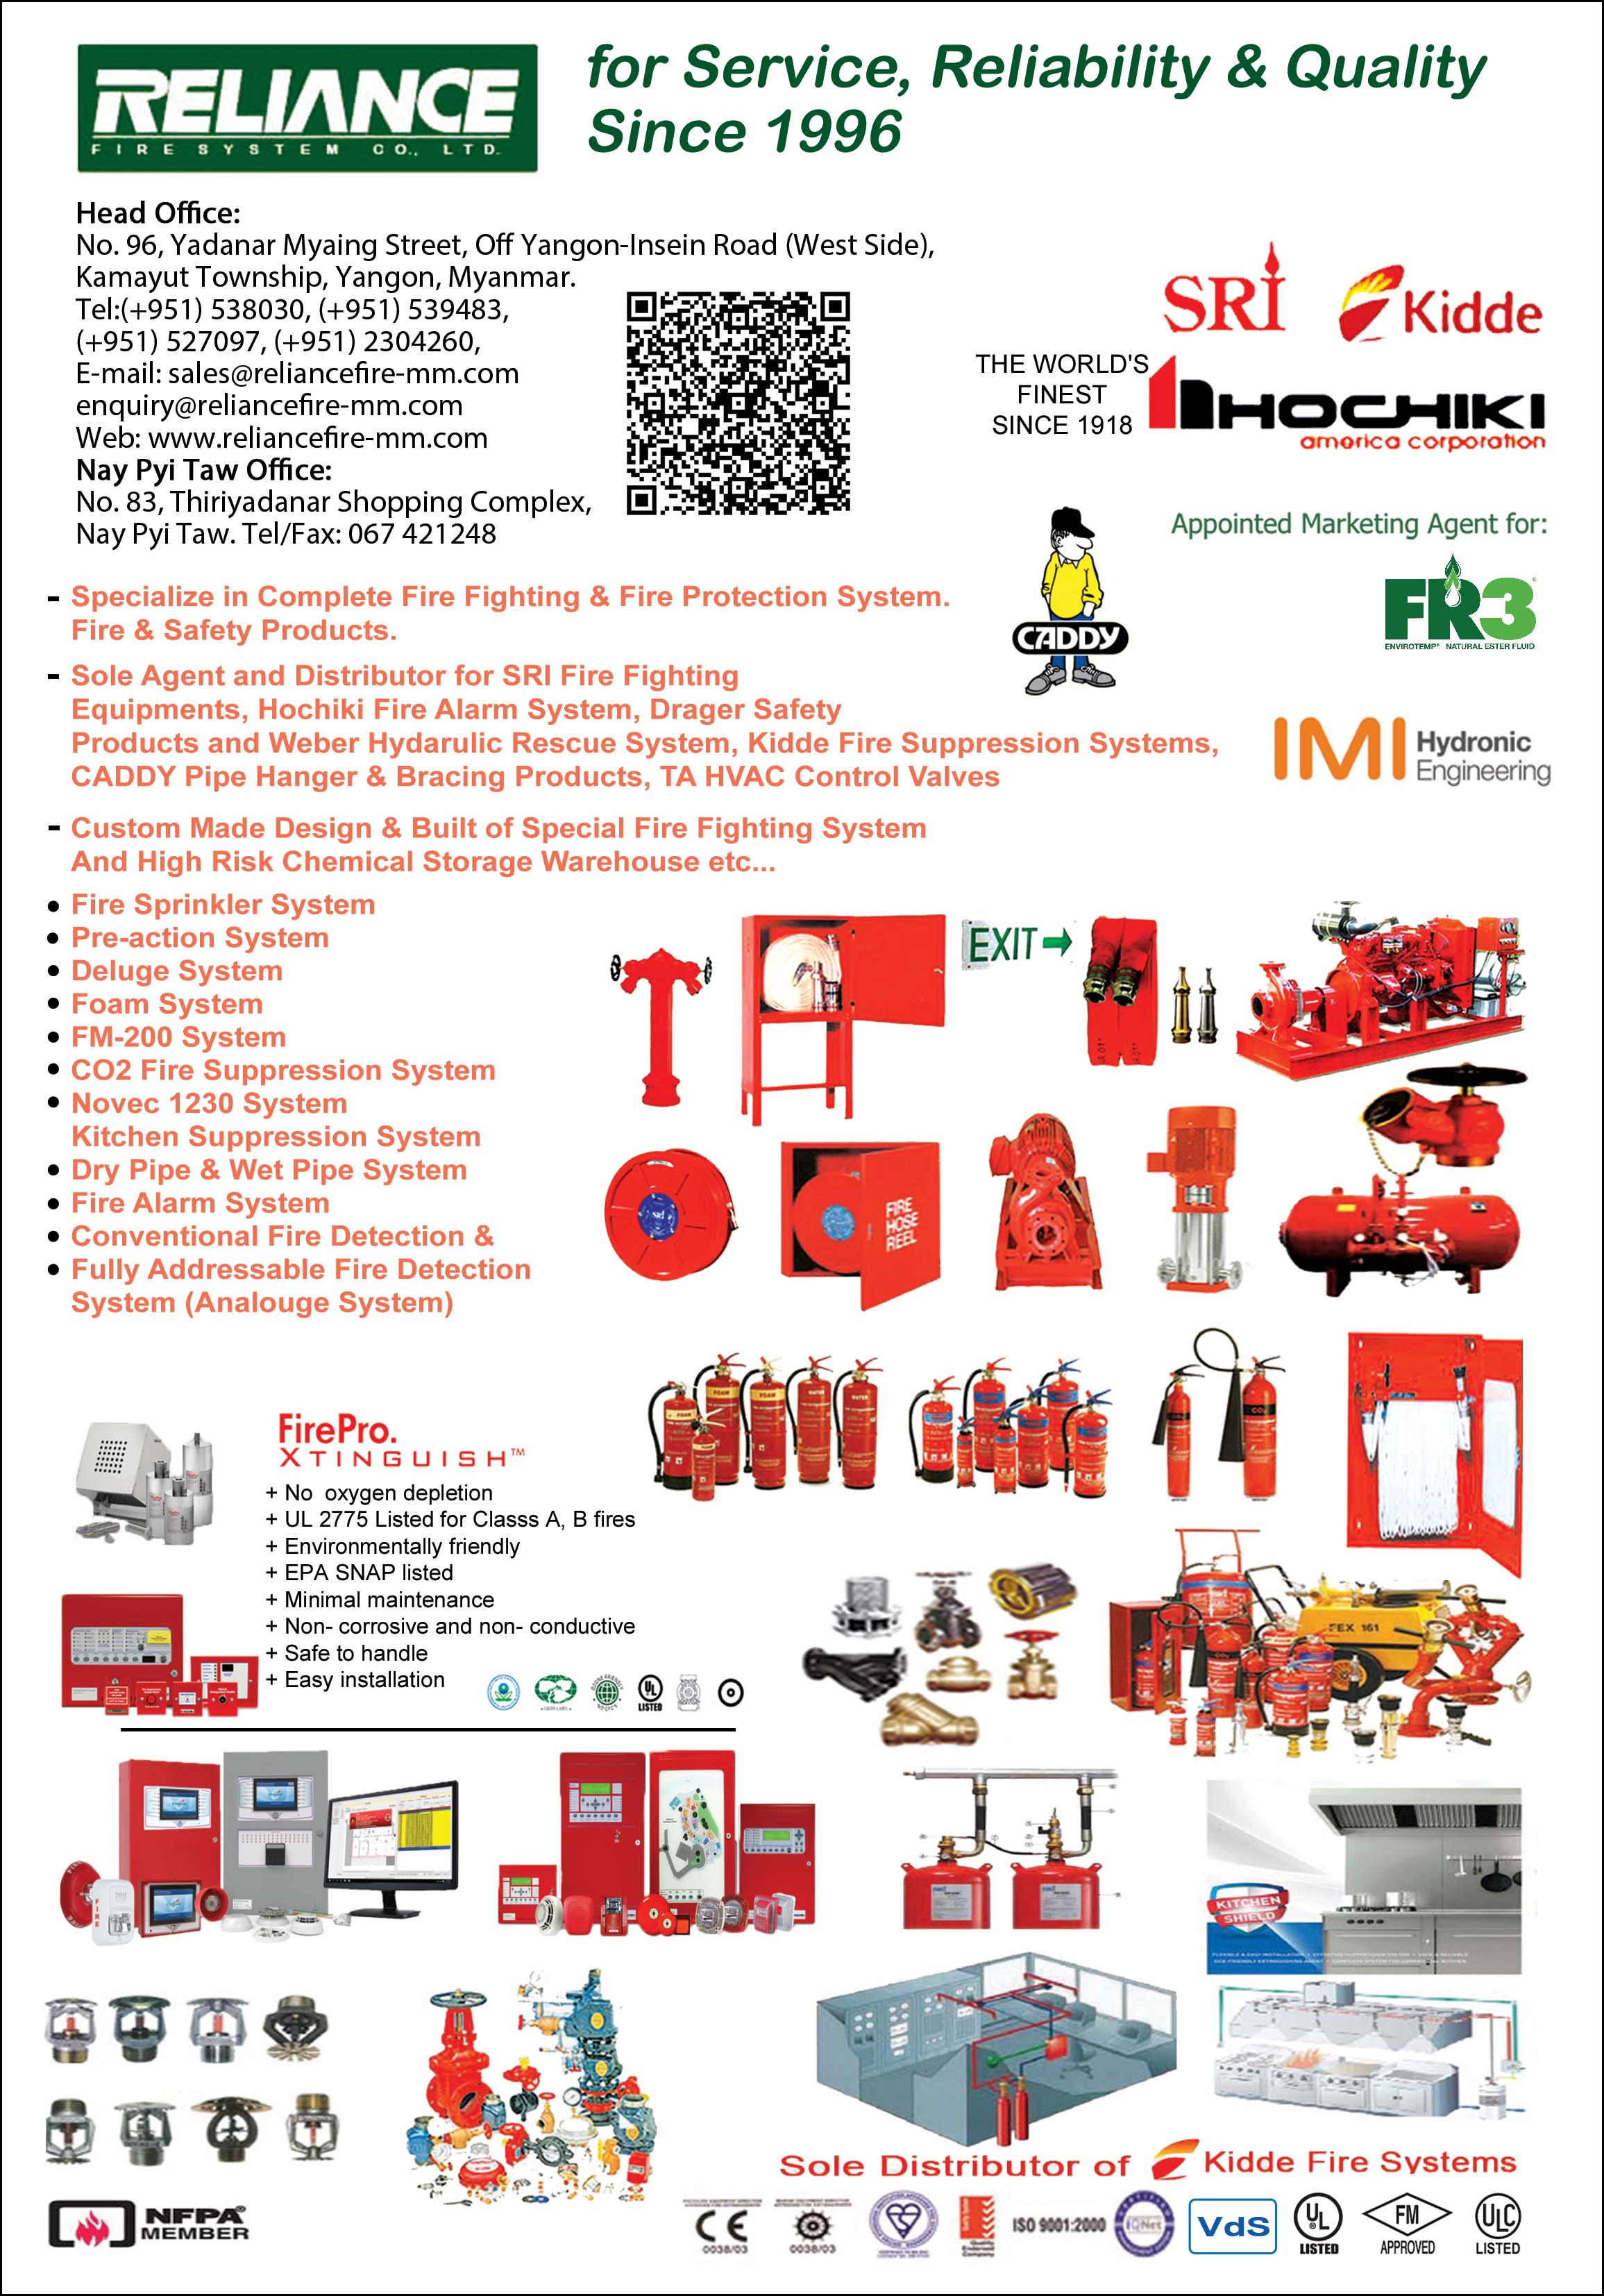 Reliance Fire System Co., Ltd.